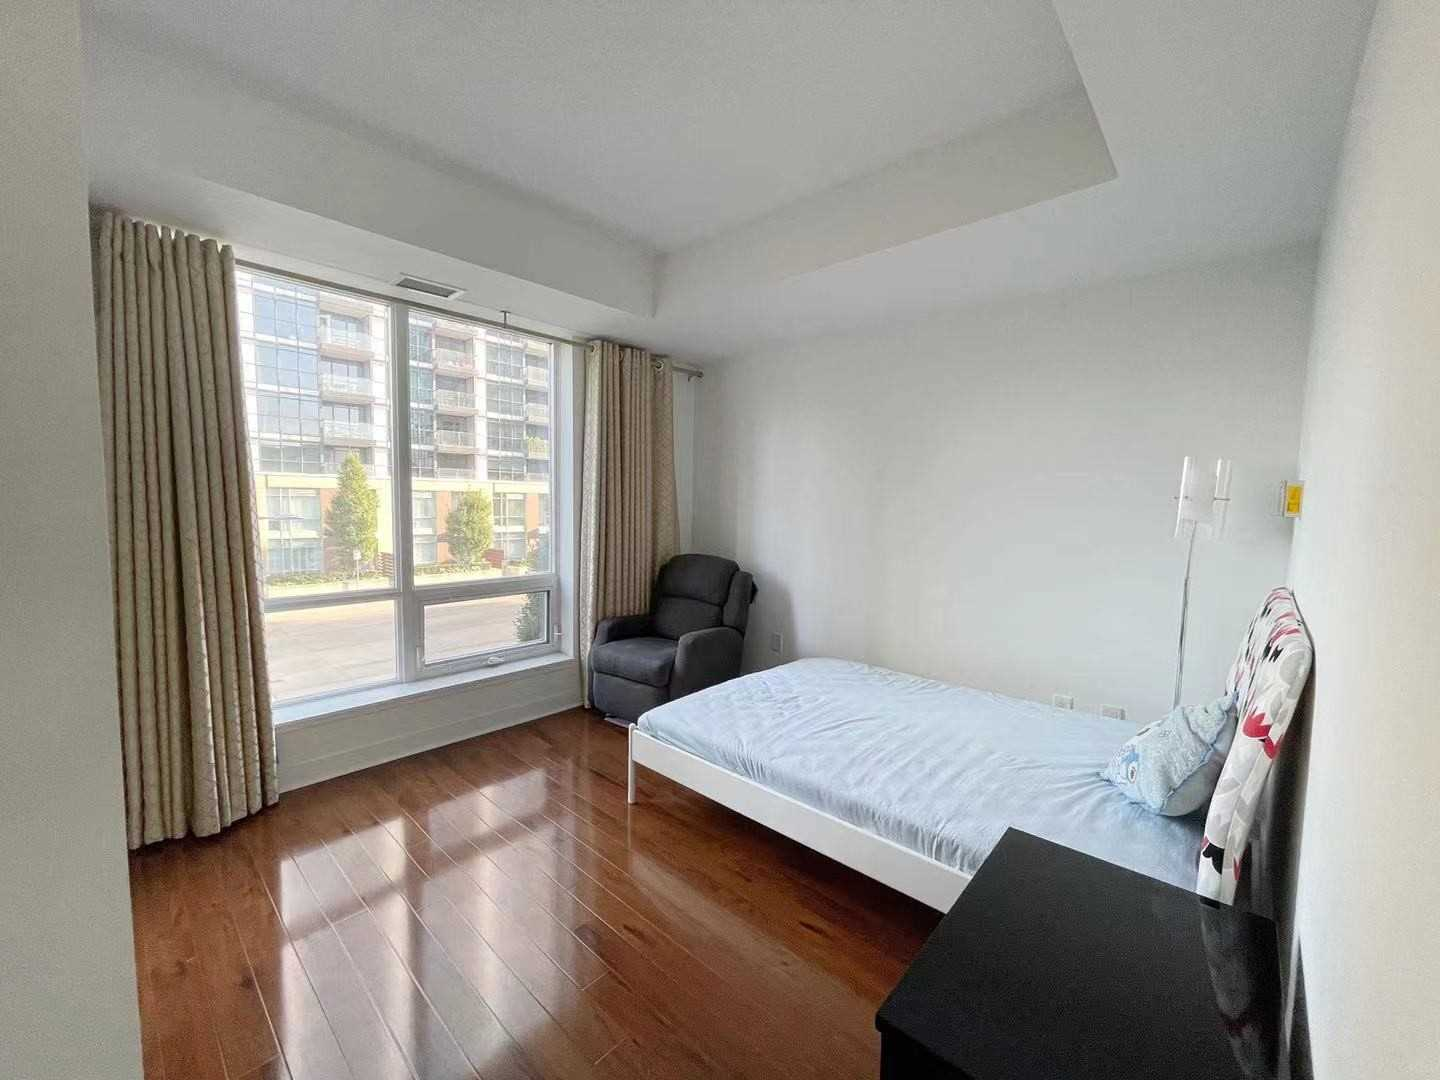 Condo Townhouse For Sale In Toronto , 3 Bedrooms Bedrooms, ,3 BathroomsBathrooms,Condo Townhouse,For Sale,Th10,Singer